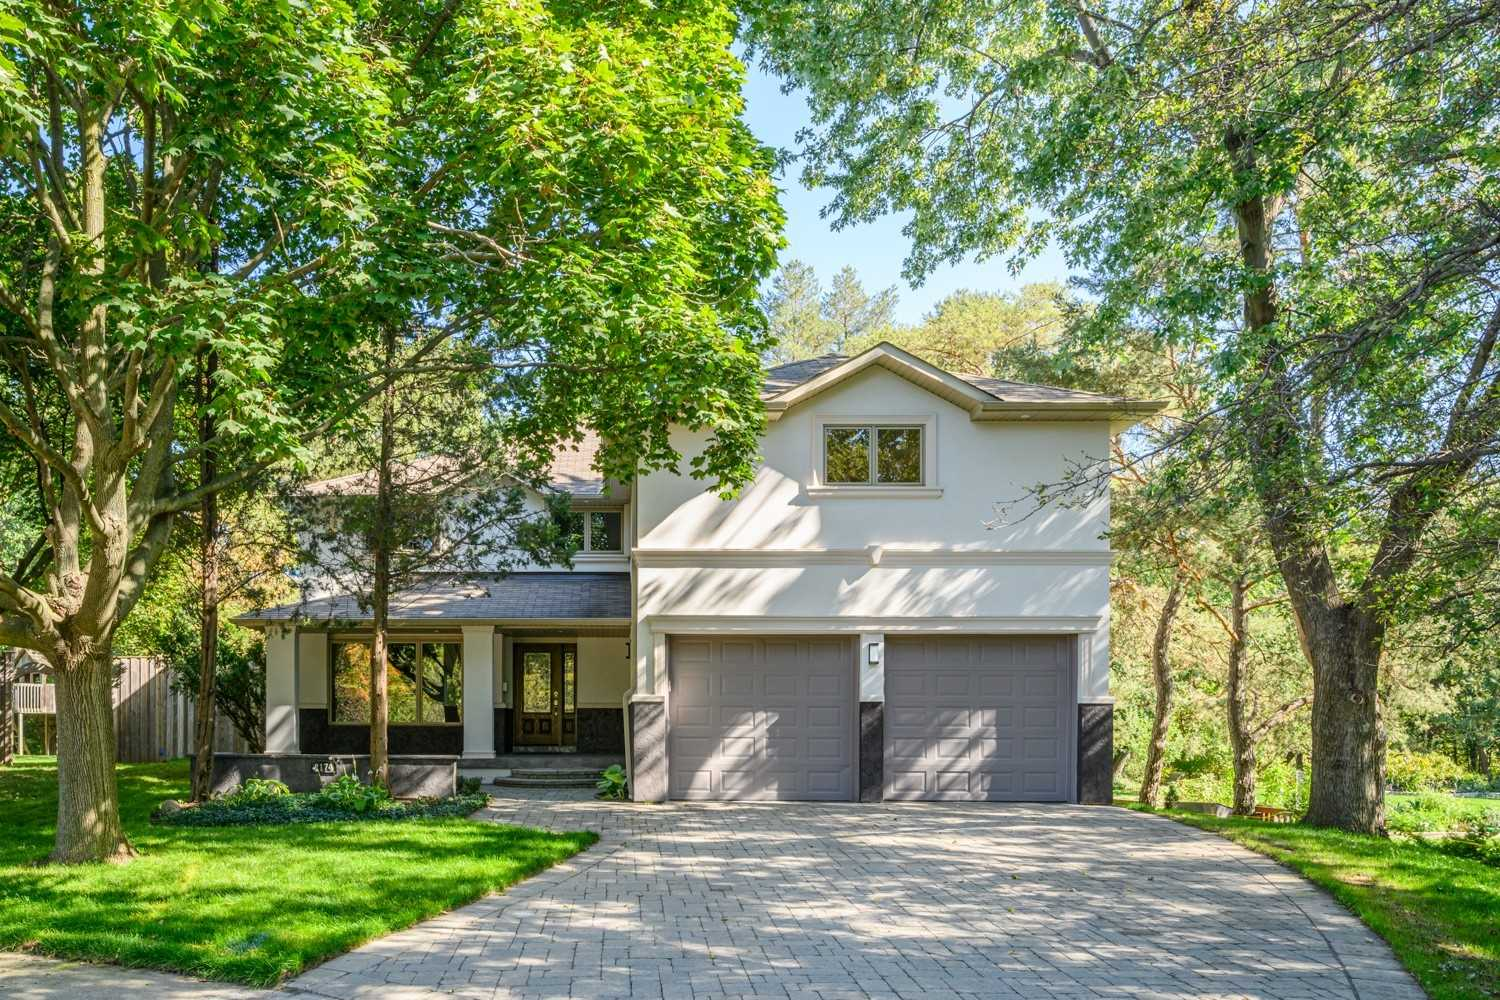 Detached house For Lease In Mississauga - 2174 Burbank Dr, Mississauga, Ontario, Canada L5L2T8 , 5 Bedrooms Bedrooms, ,4 BathroomsBathrooms,Detached,For Lease,Burbank